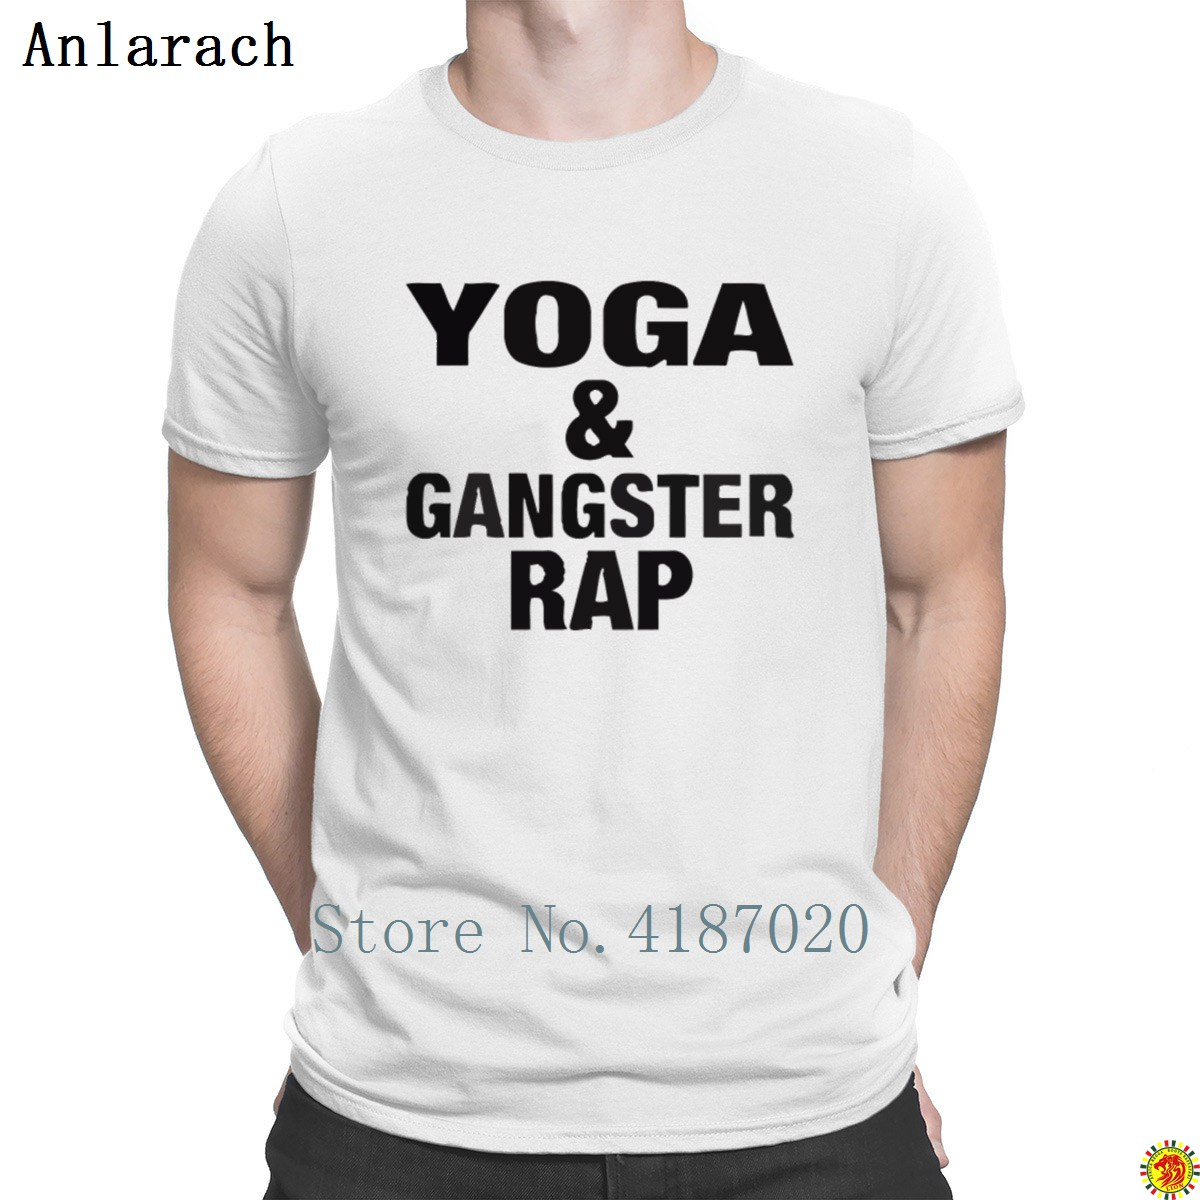 Yogas And Gangster Rap T Shirt Cheap Sale Short Sleeve Hilarious